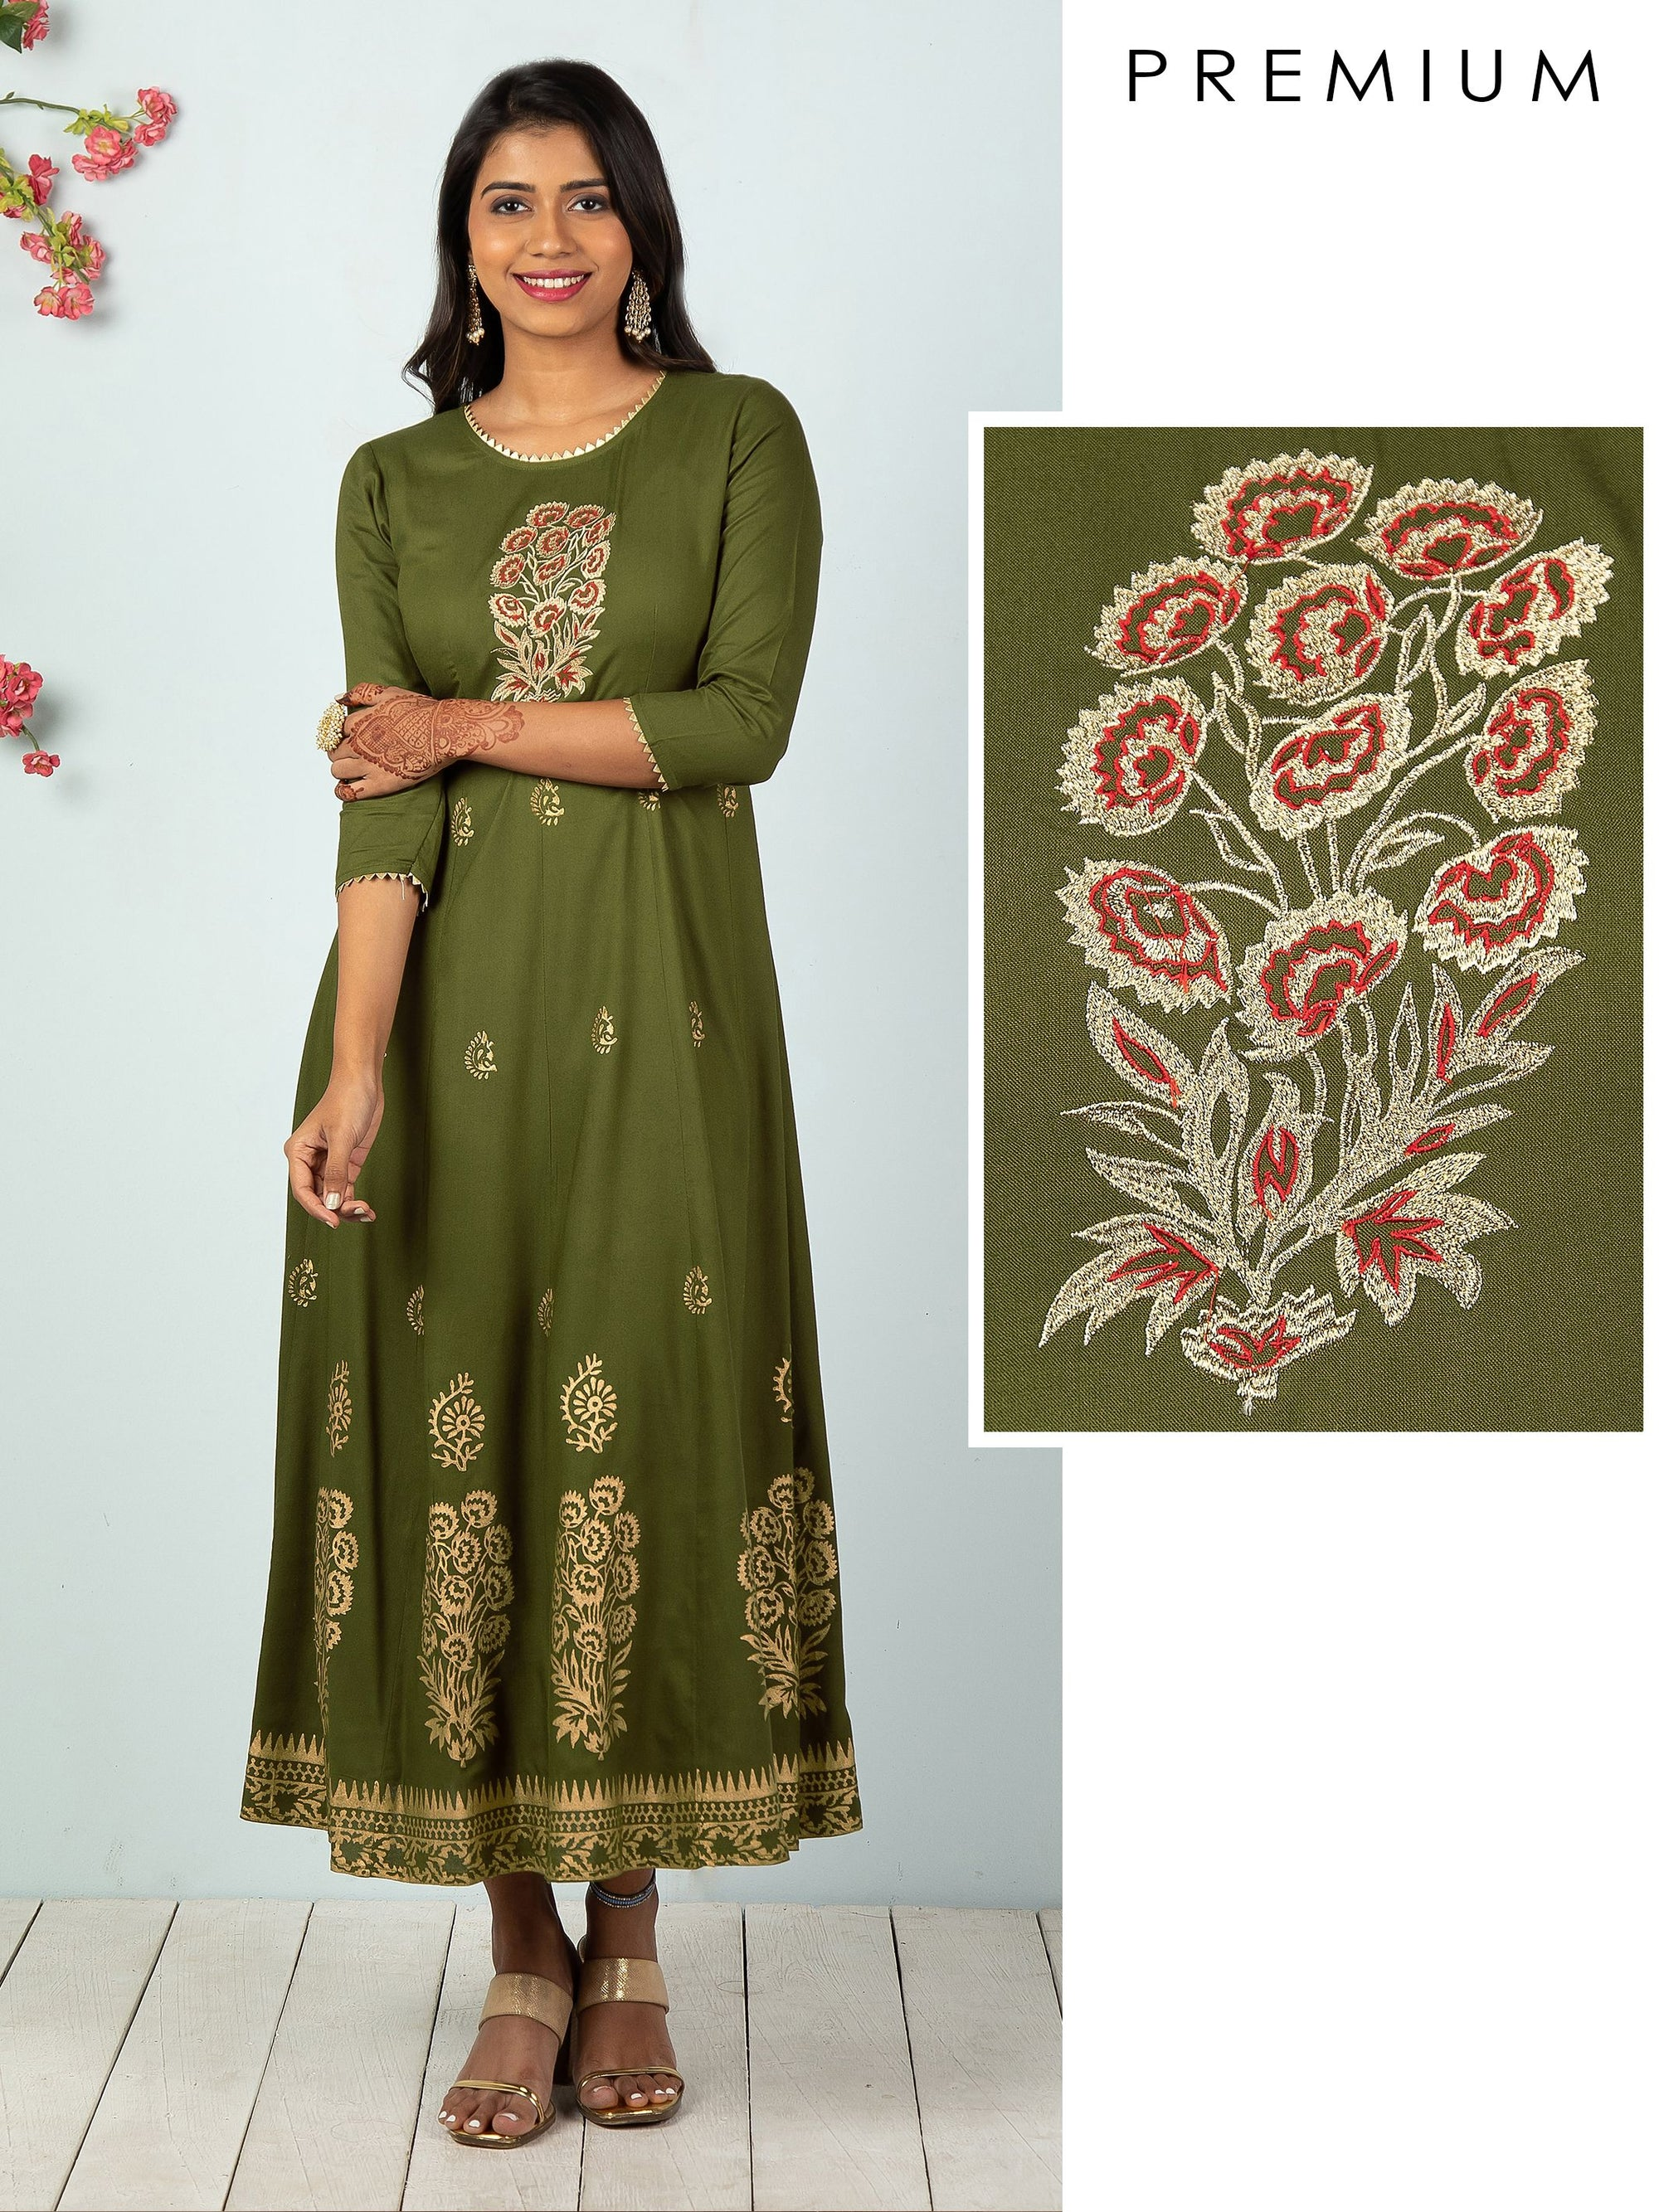 Floral Zari Embroidered Work With Khari Floral Print Paneled Maxi